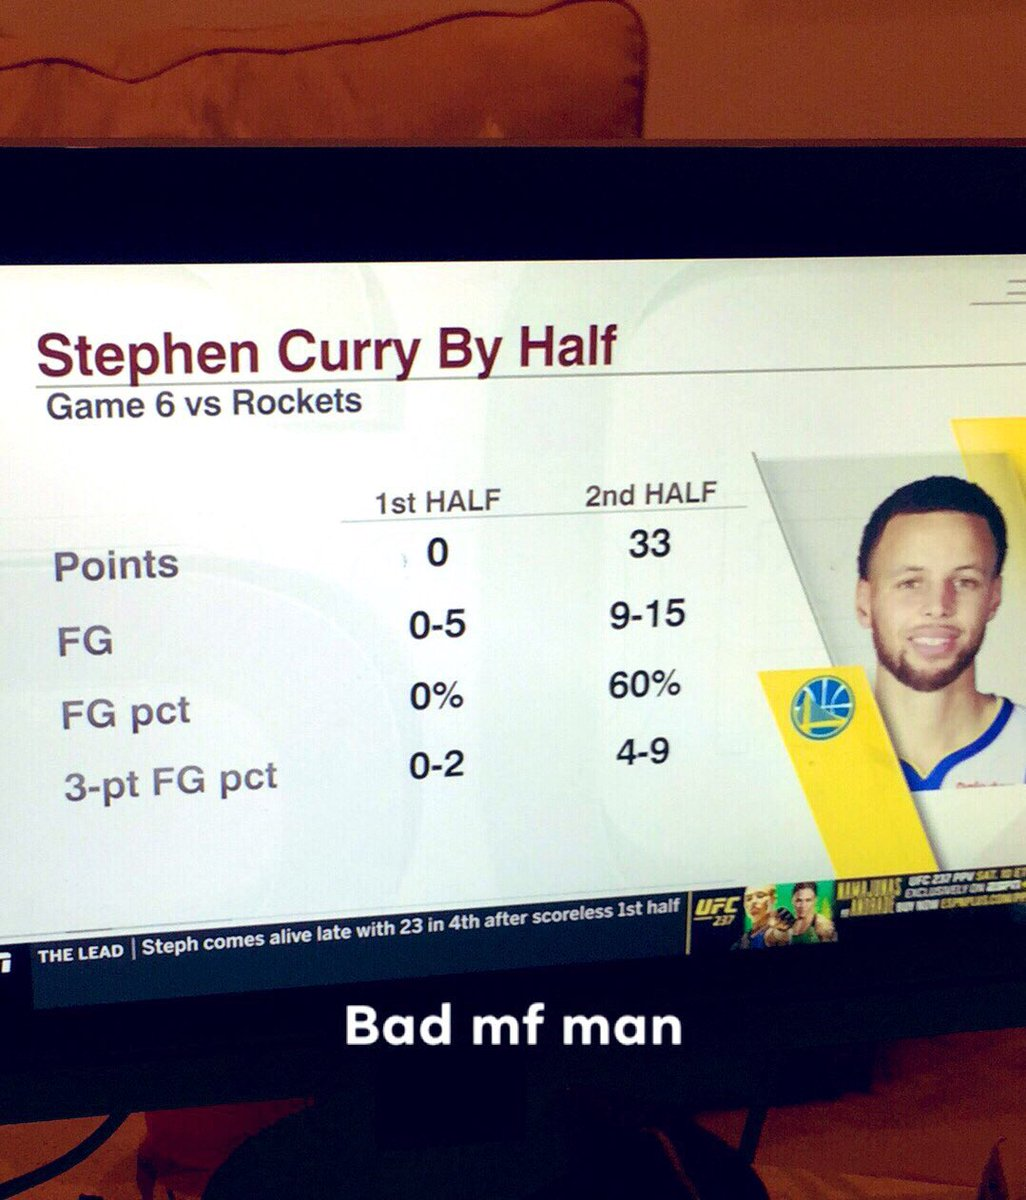 Since he doesn't have a twitter pls forward this to Chuck, respectfully @NBAonTNT ... I'm tryna see something !